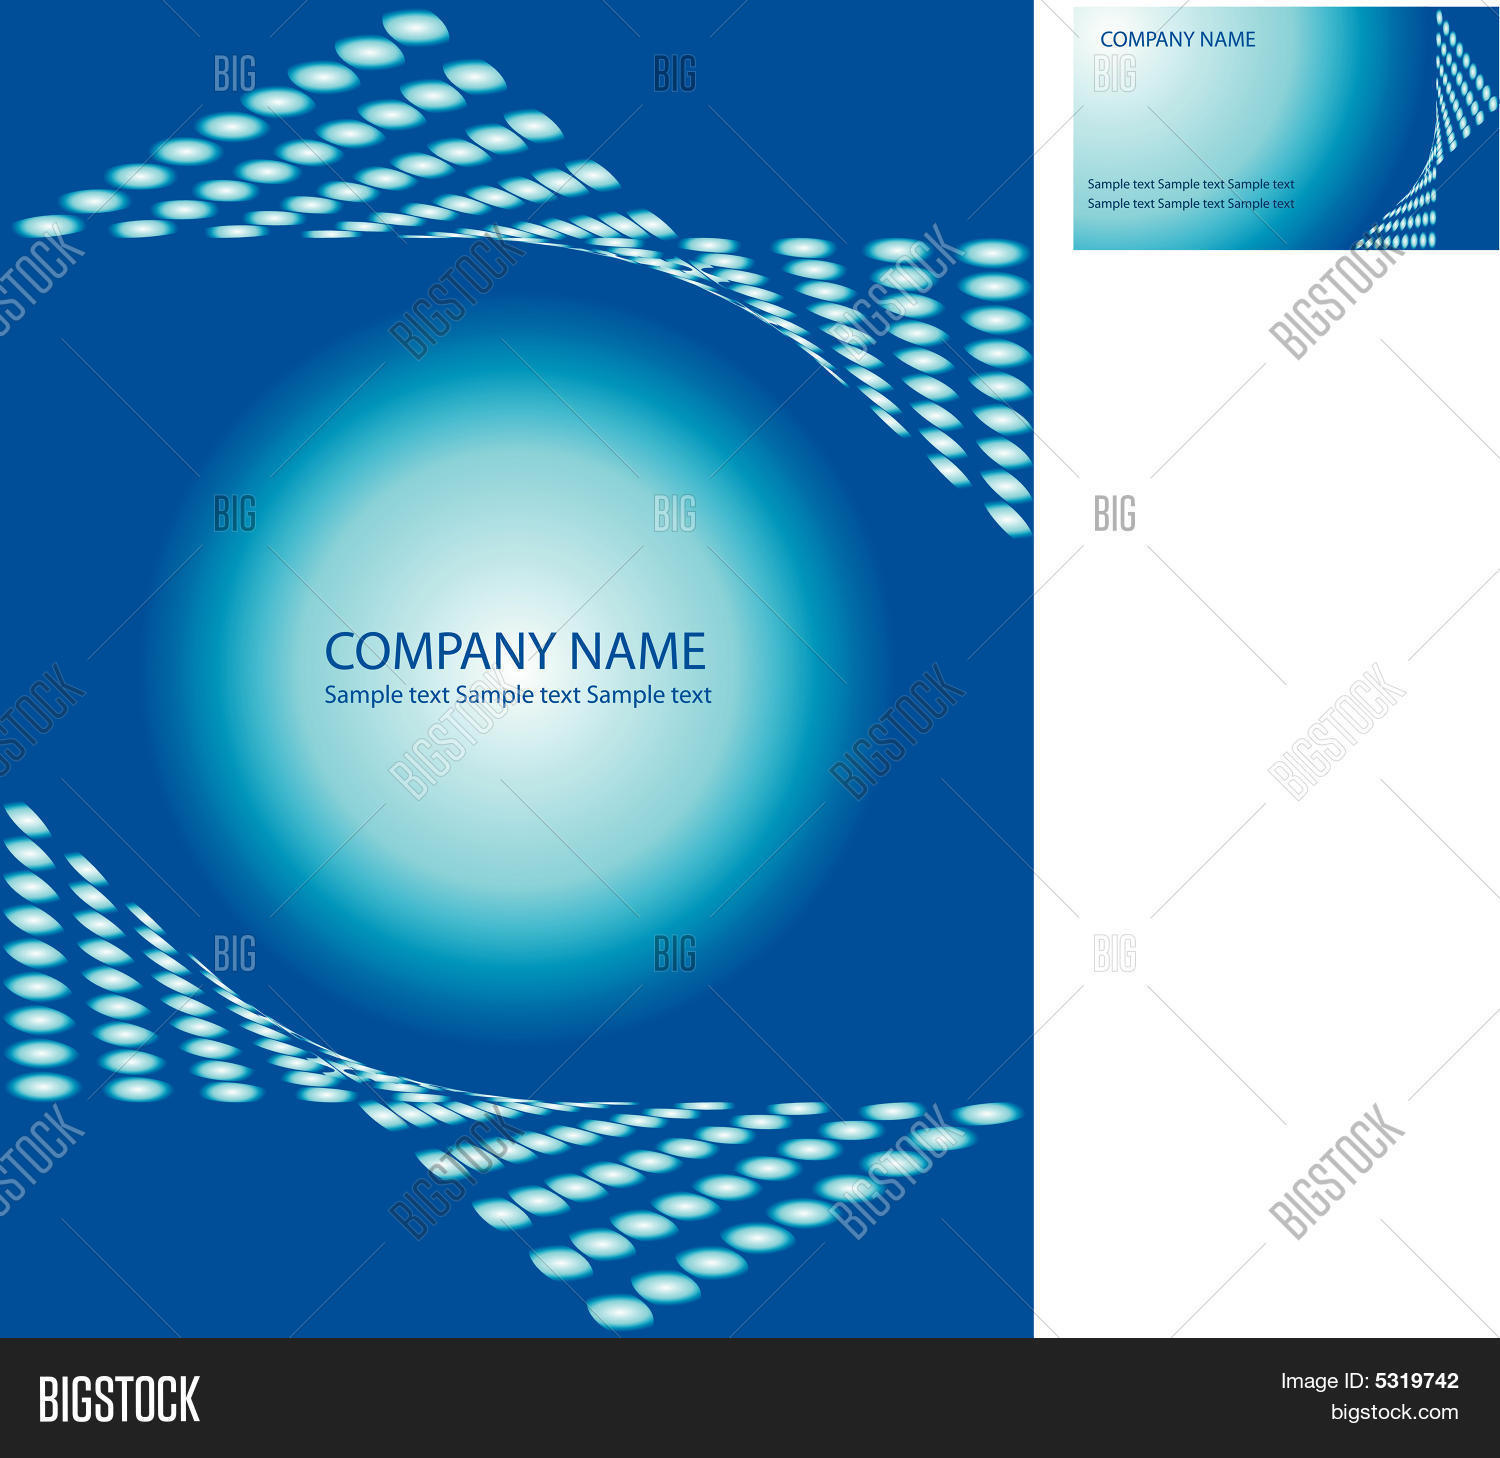 Business Book Cover Names ~ Abstract business book cover vector photo bigstock